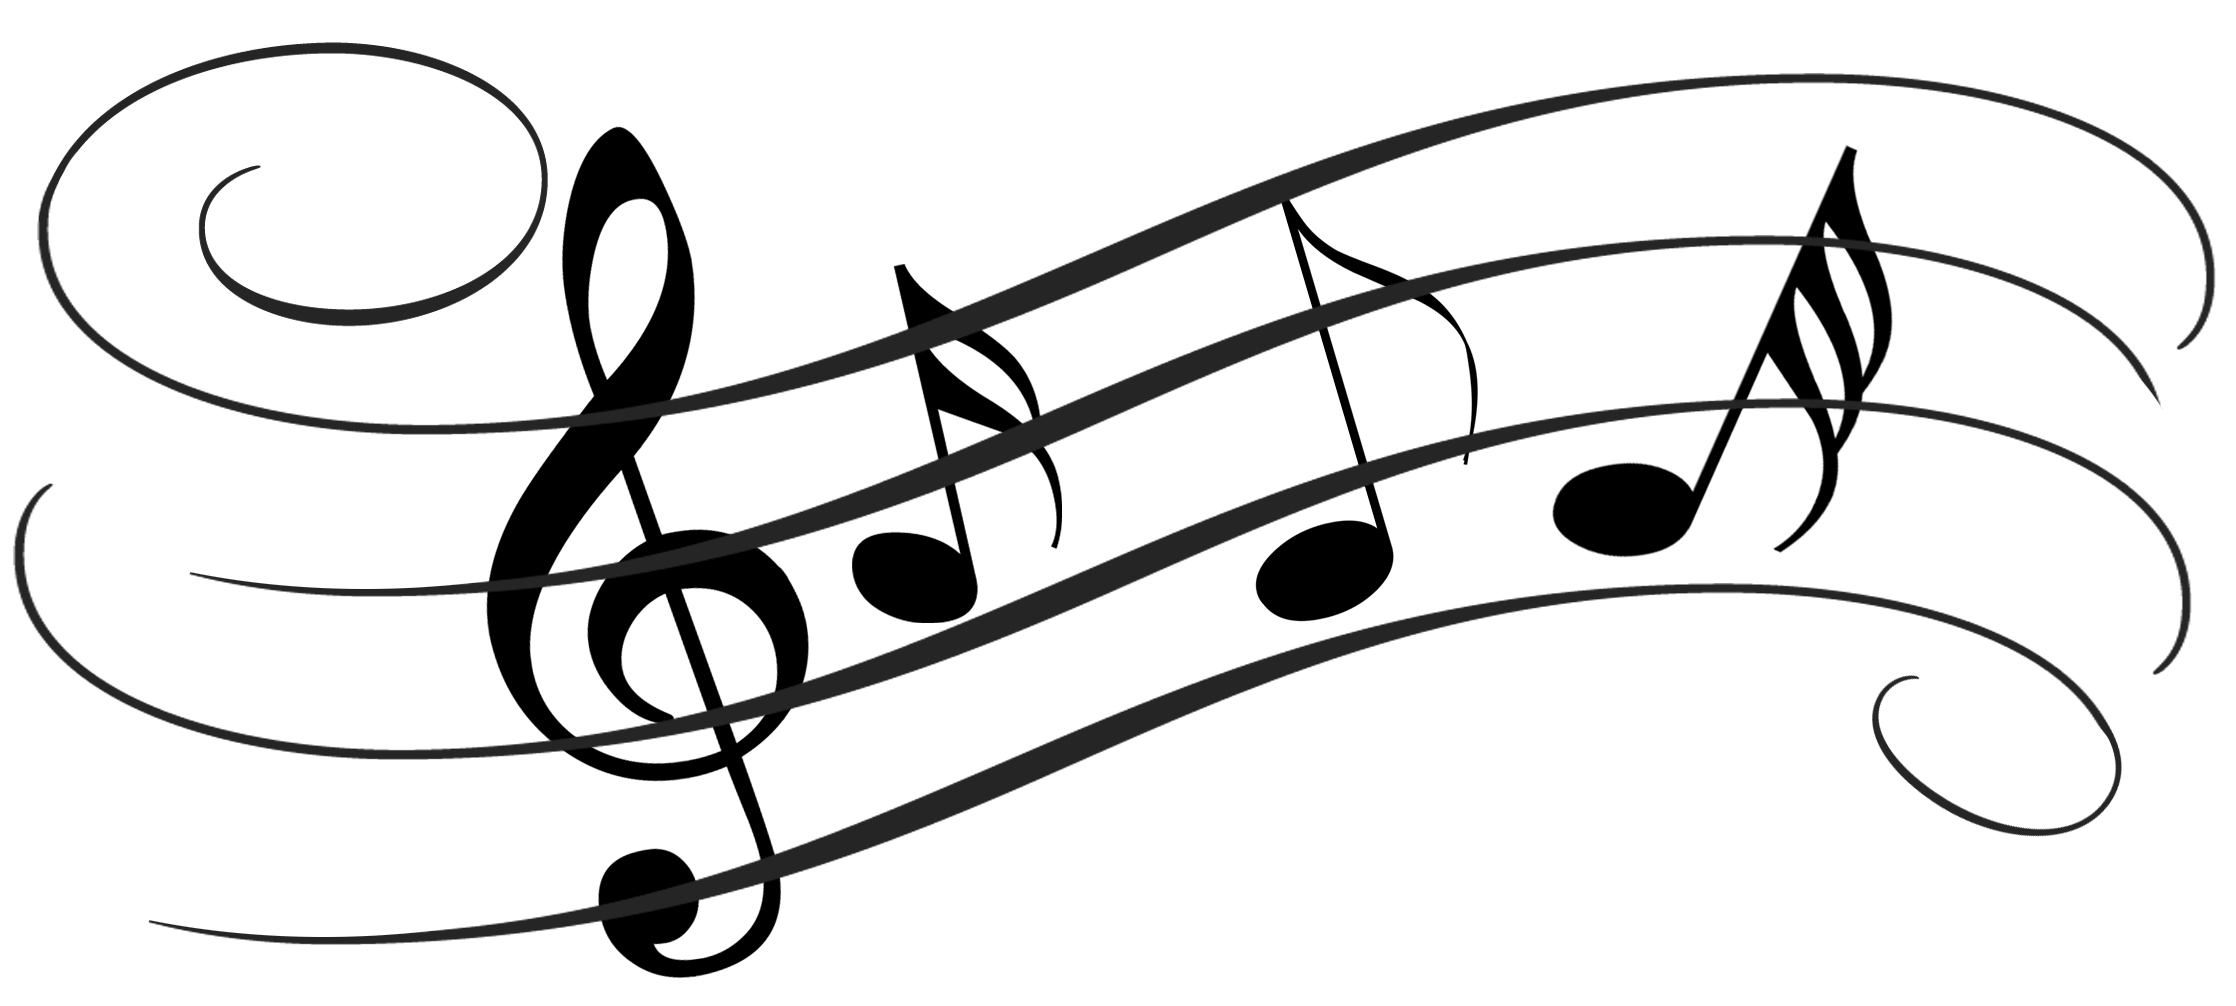 Musical Notes PNG - 5780